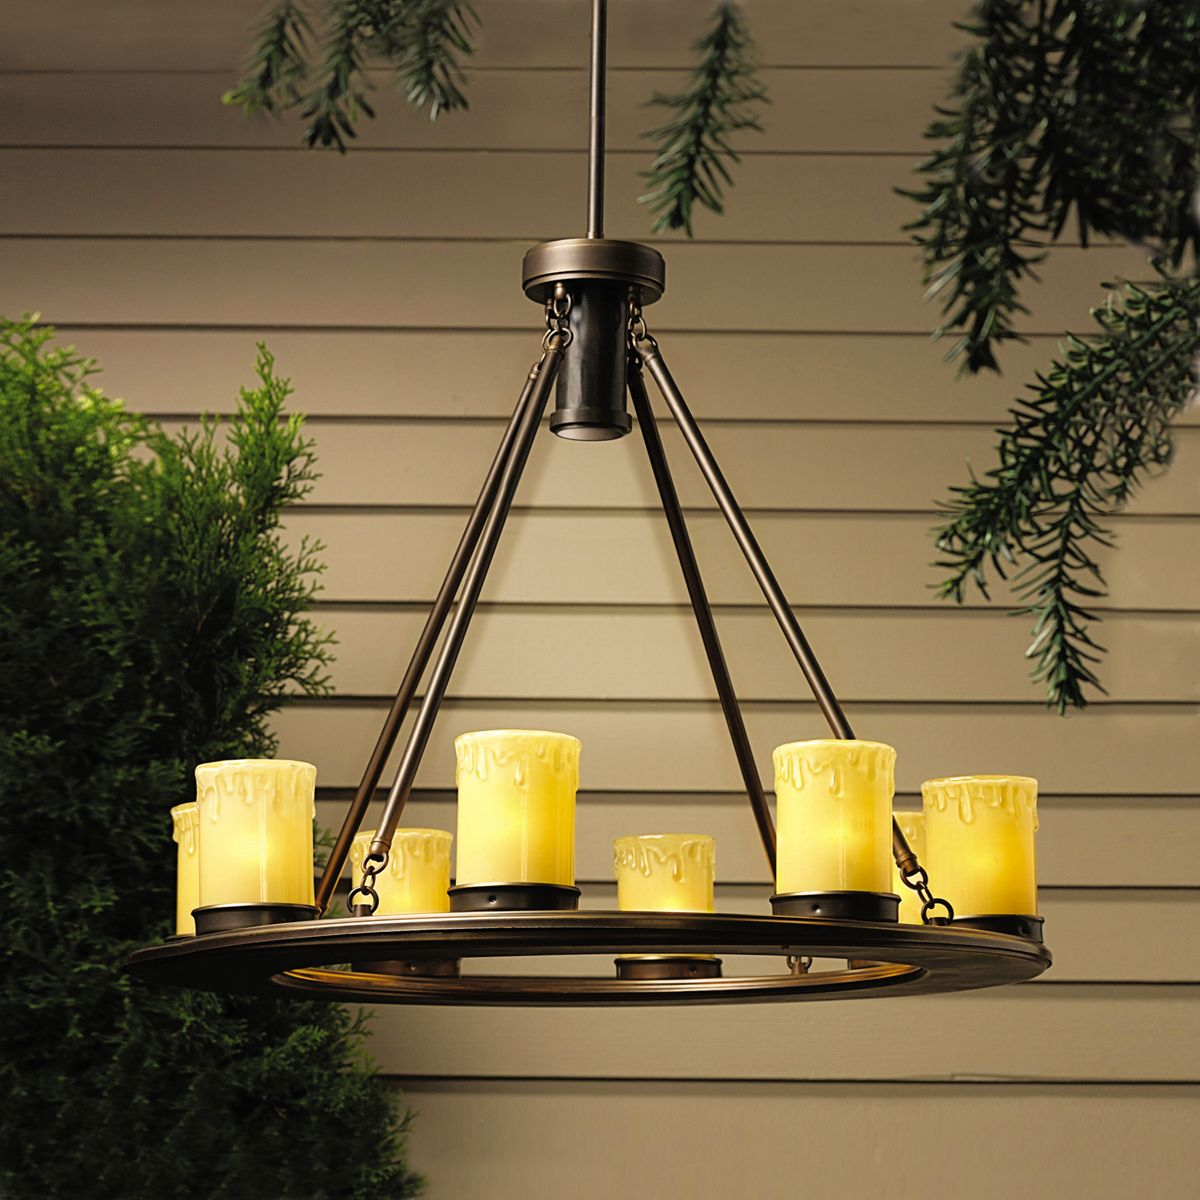 Bright Ideas For Outdoor Lighting Designs | houseofdesign.info